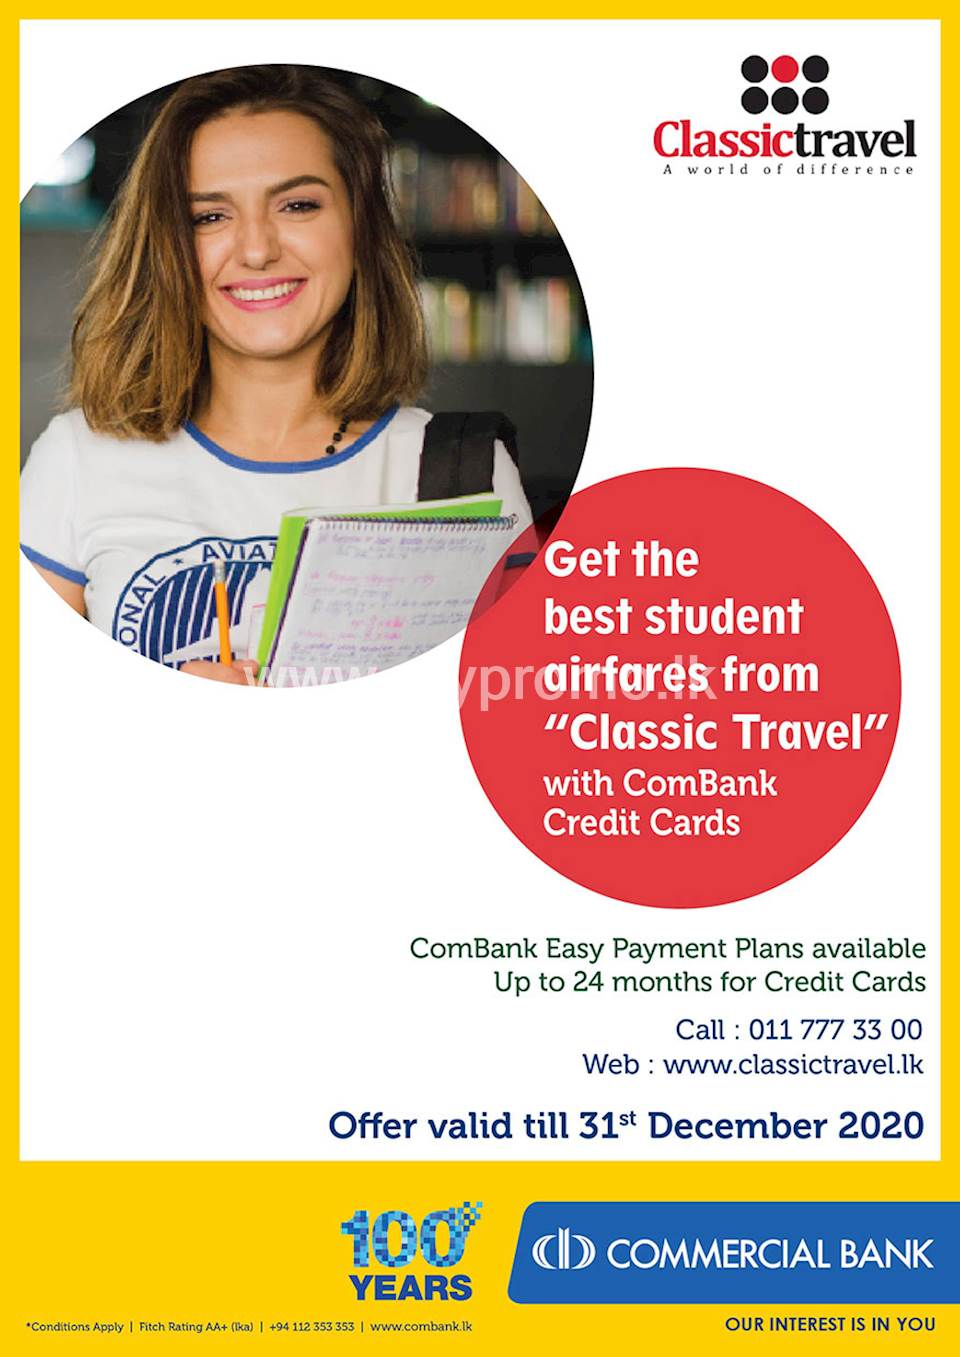 Student Offer - Get the best student airfares from Classic Travel with ComBank Credit Cards.